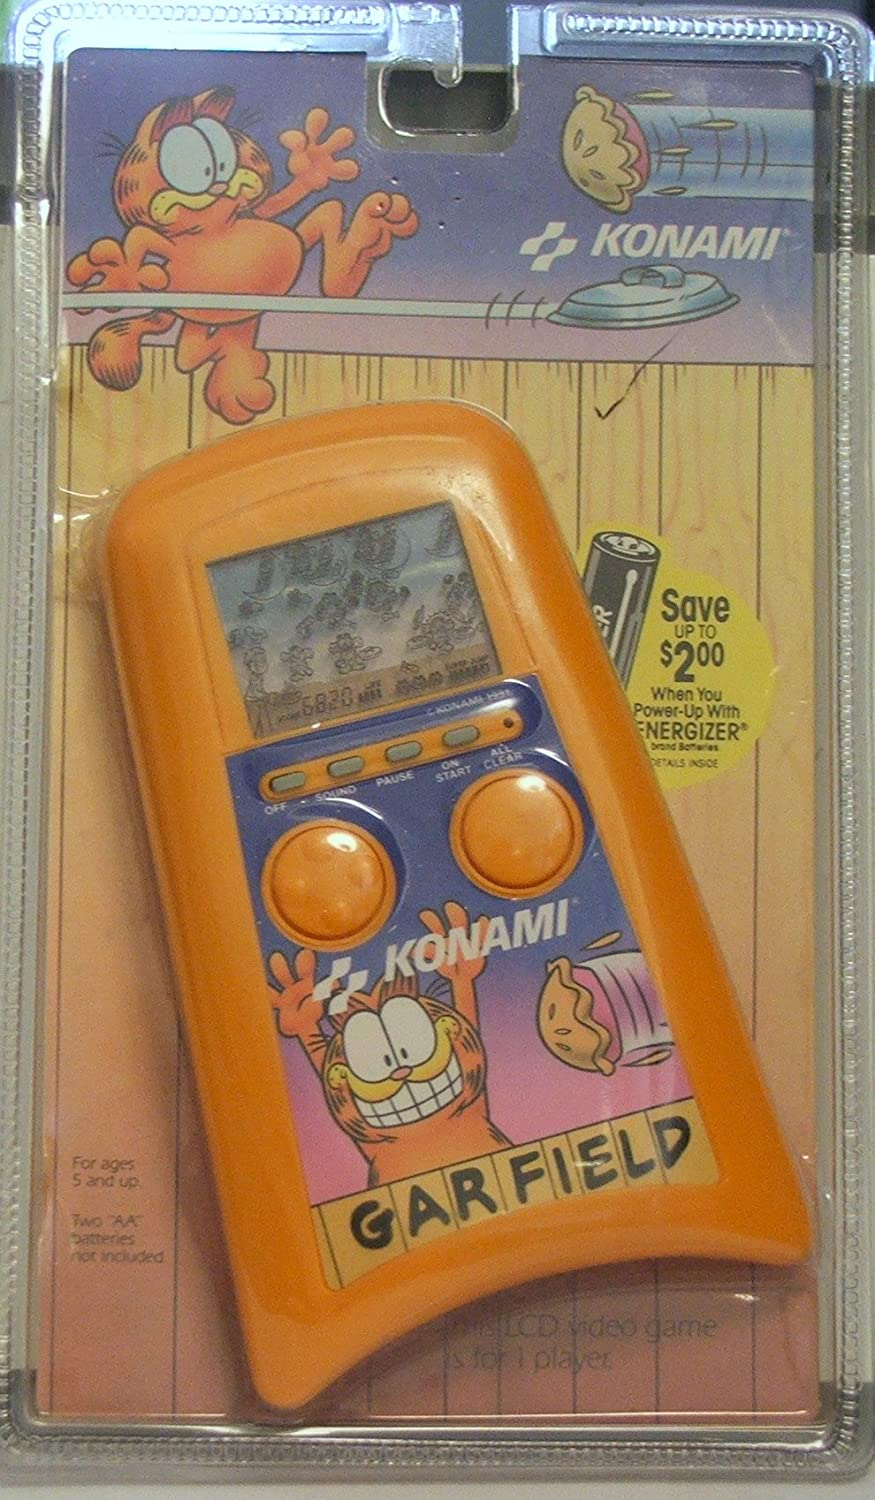 Amazon com: Garfield Konami LCD Hand Held Video Game: Toys